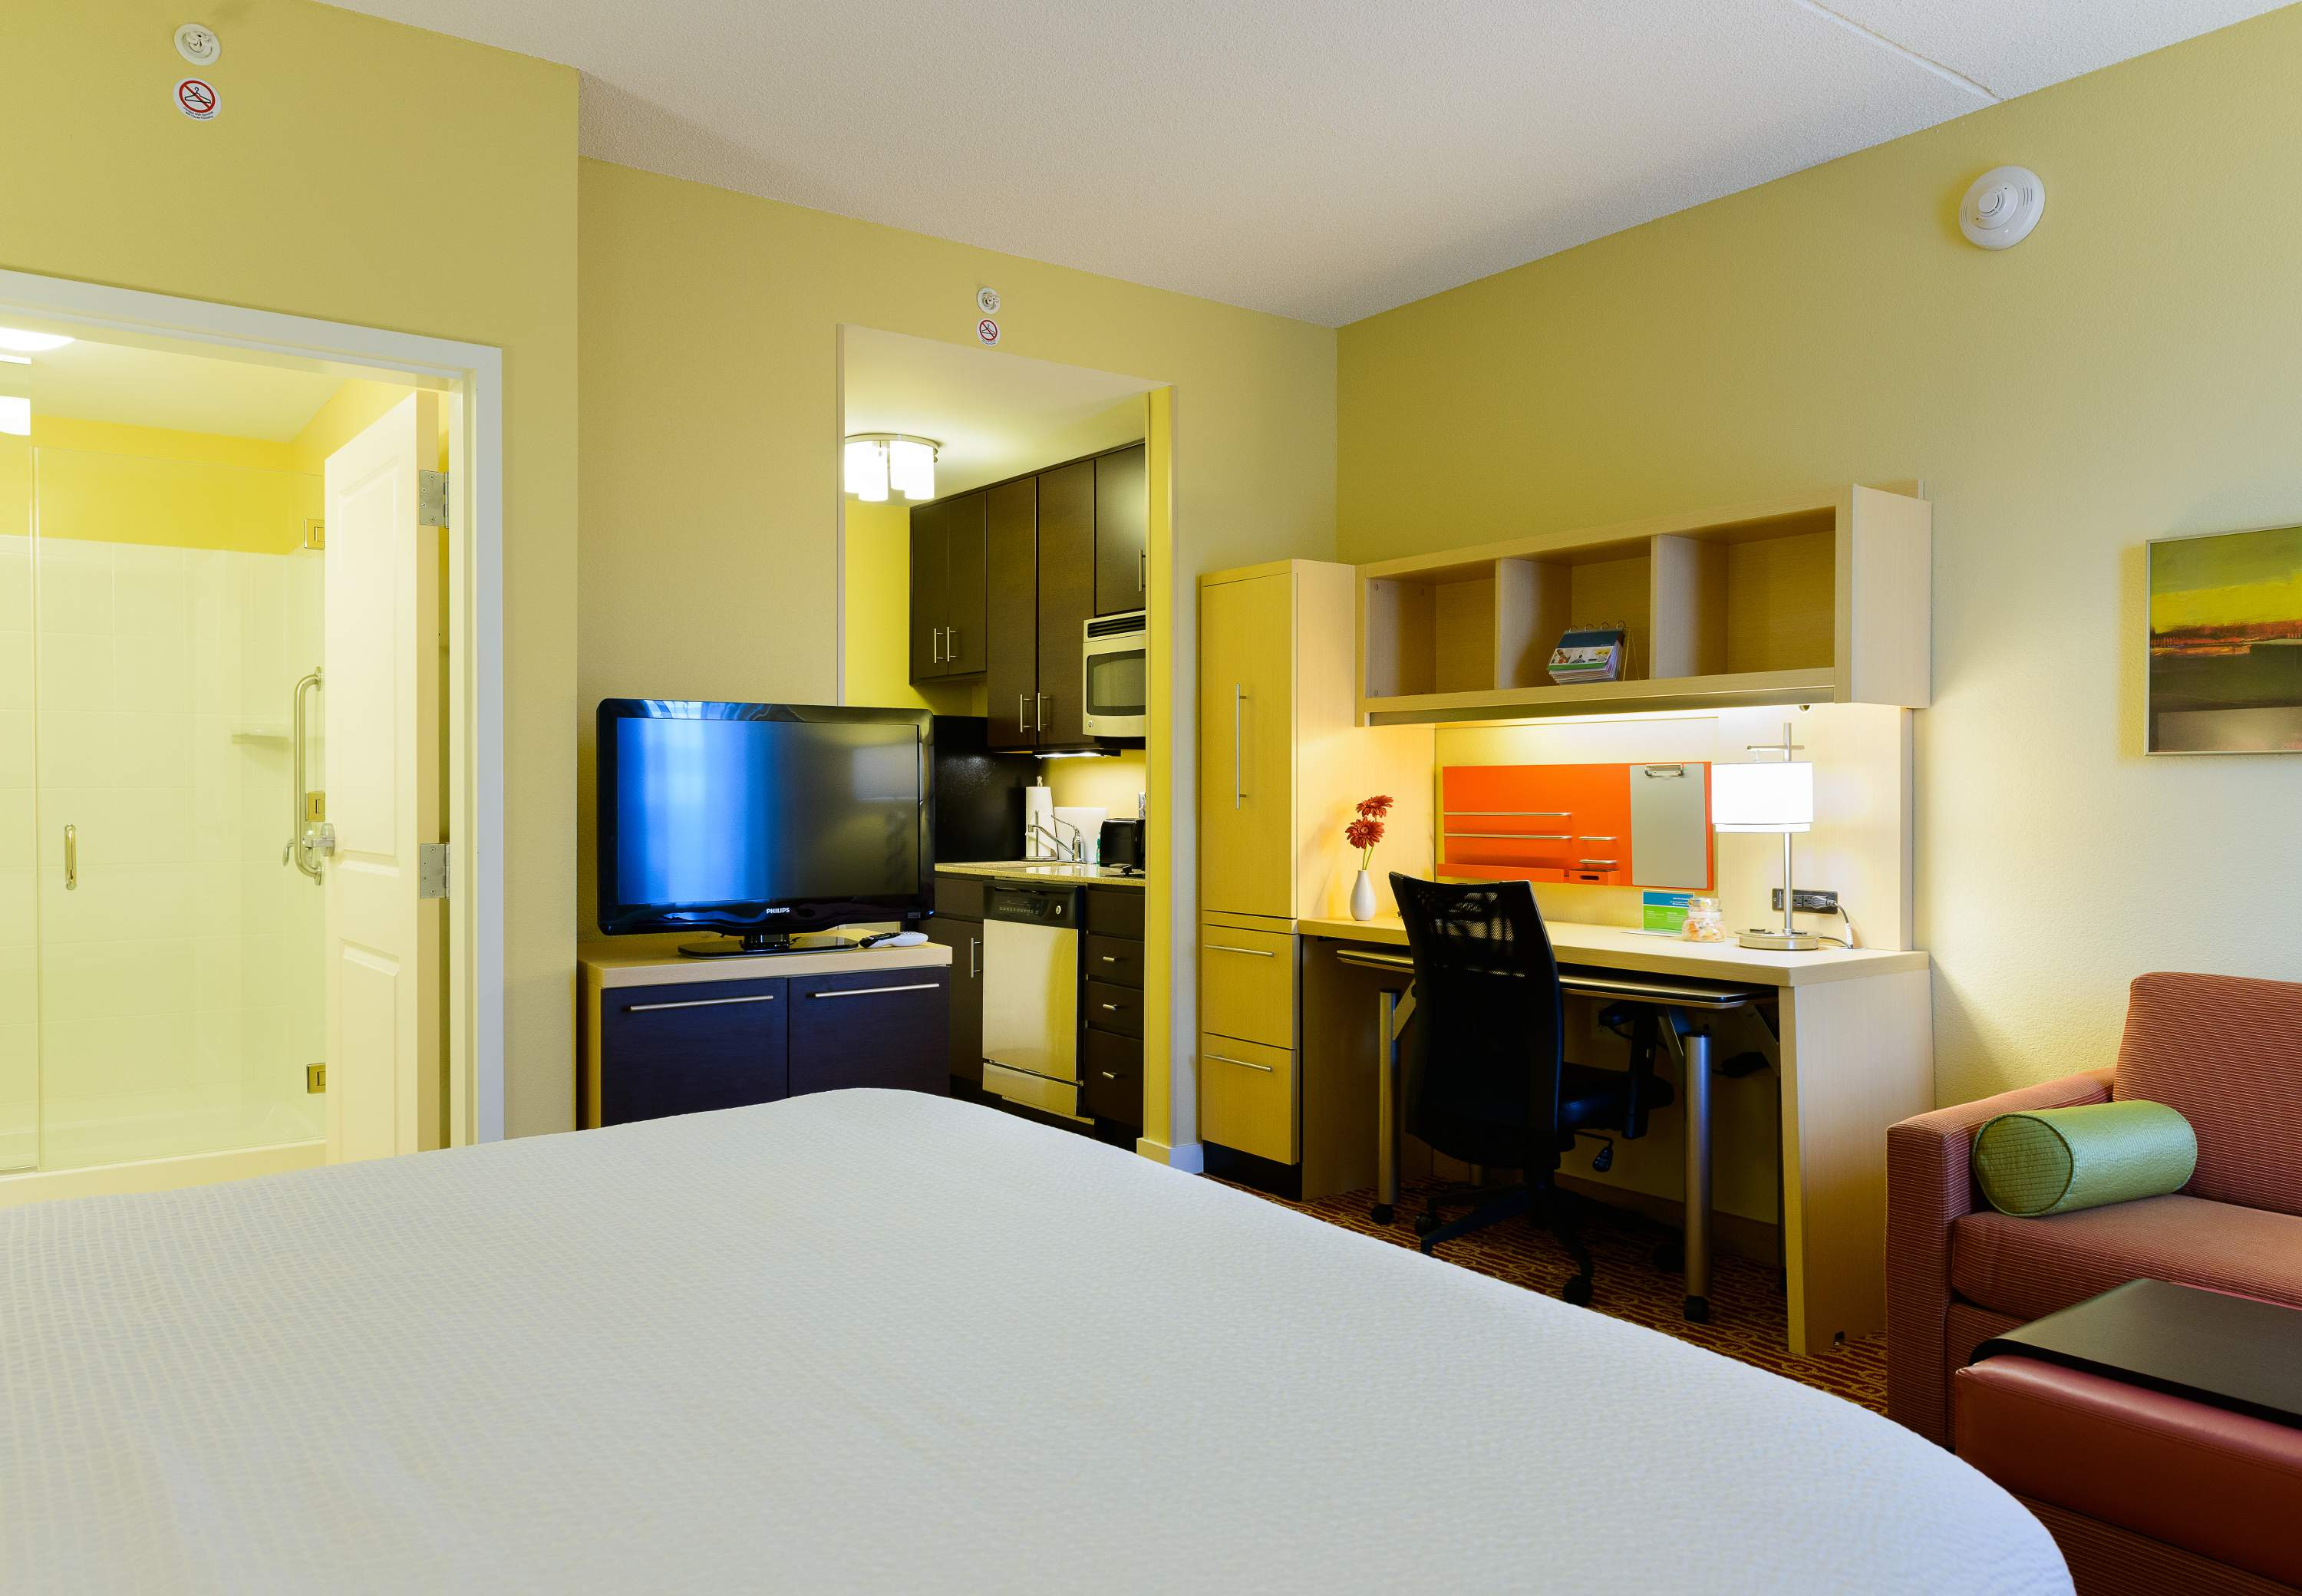 TownePlace Suites by Marriott Frederick image 5